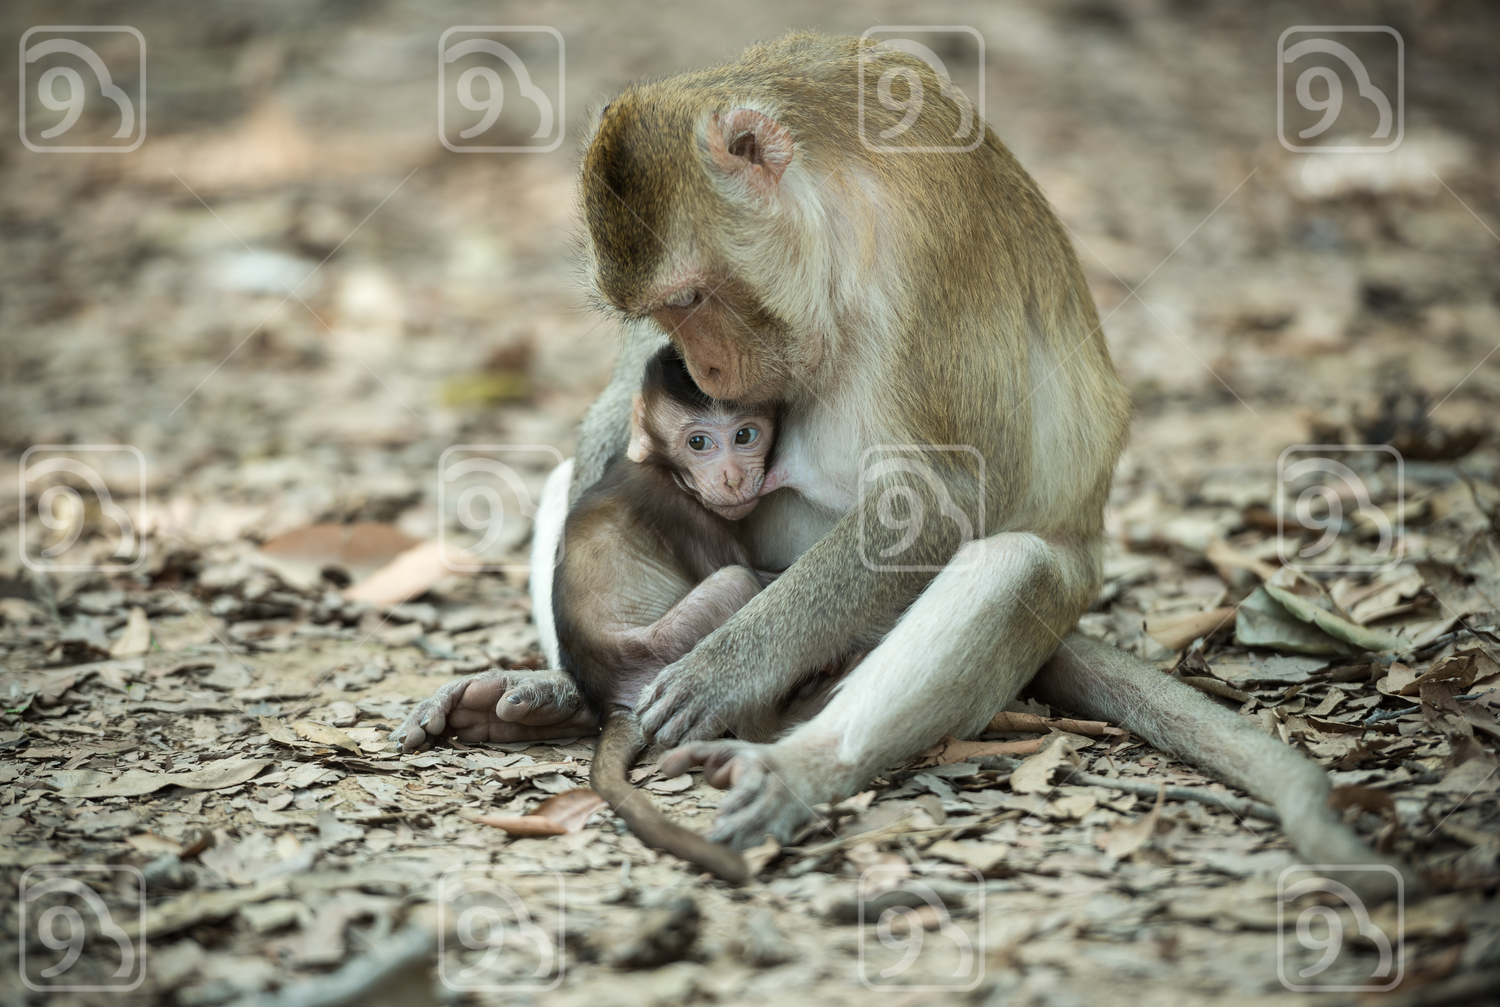 Monkey eating milk from the mother